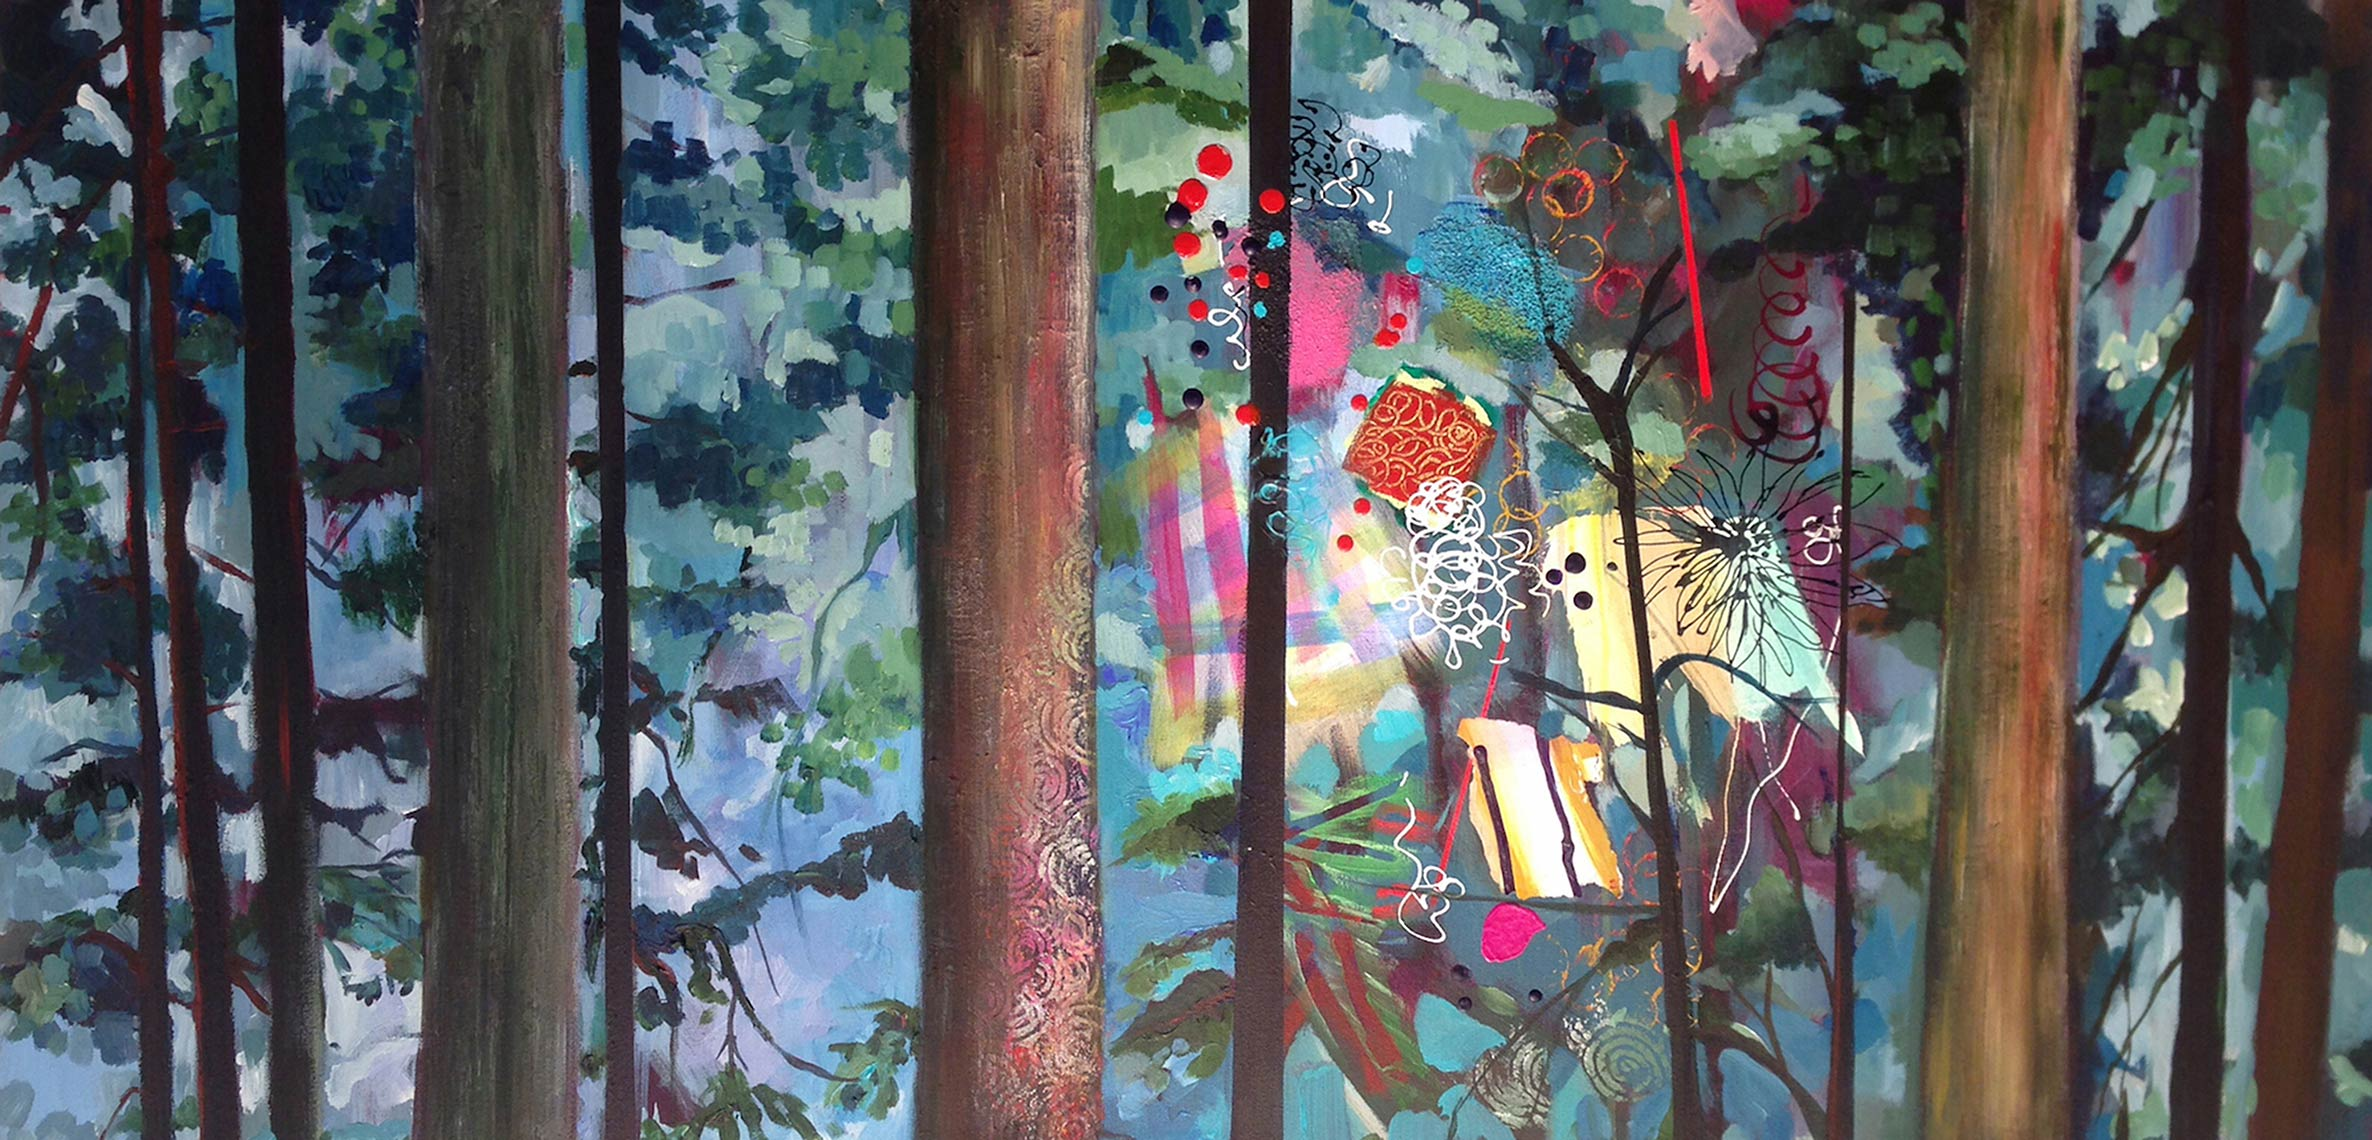 Enchanted-Forest-2016-Acrylic-on-canvas-24-x-48-